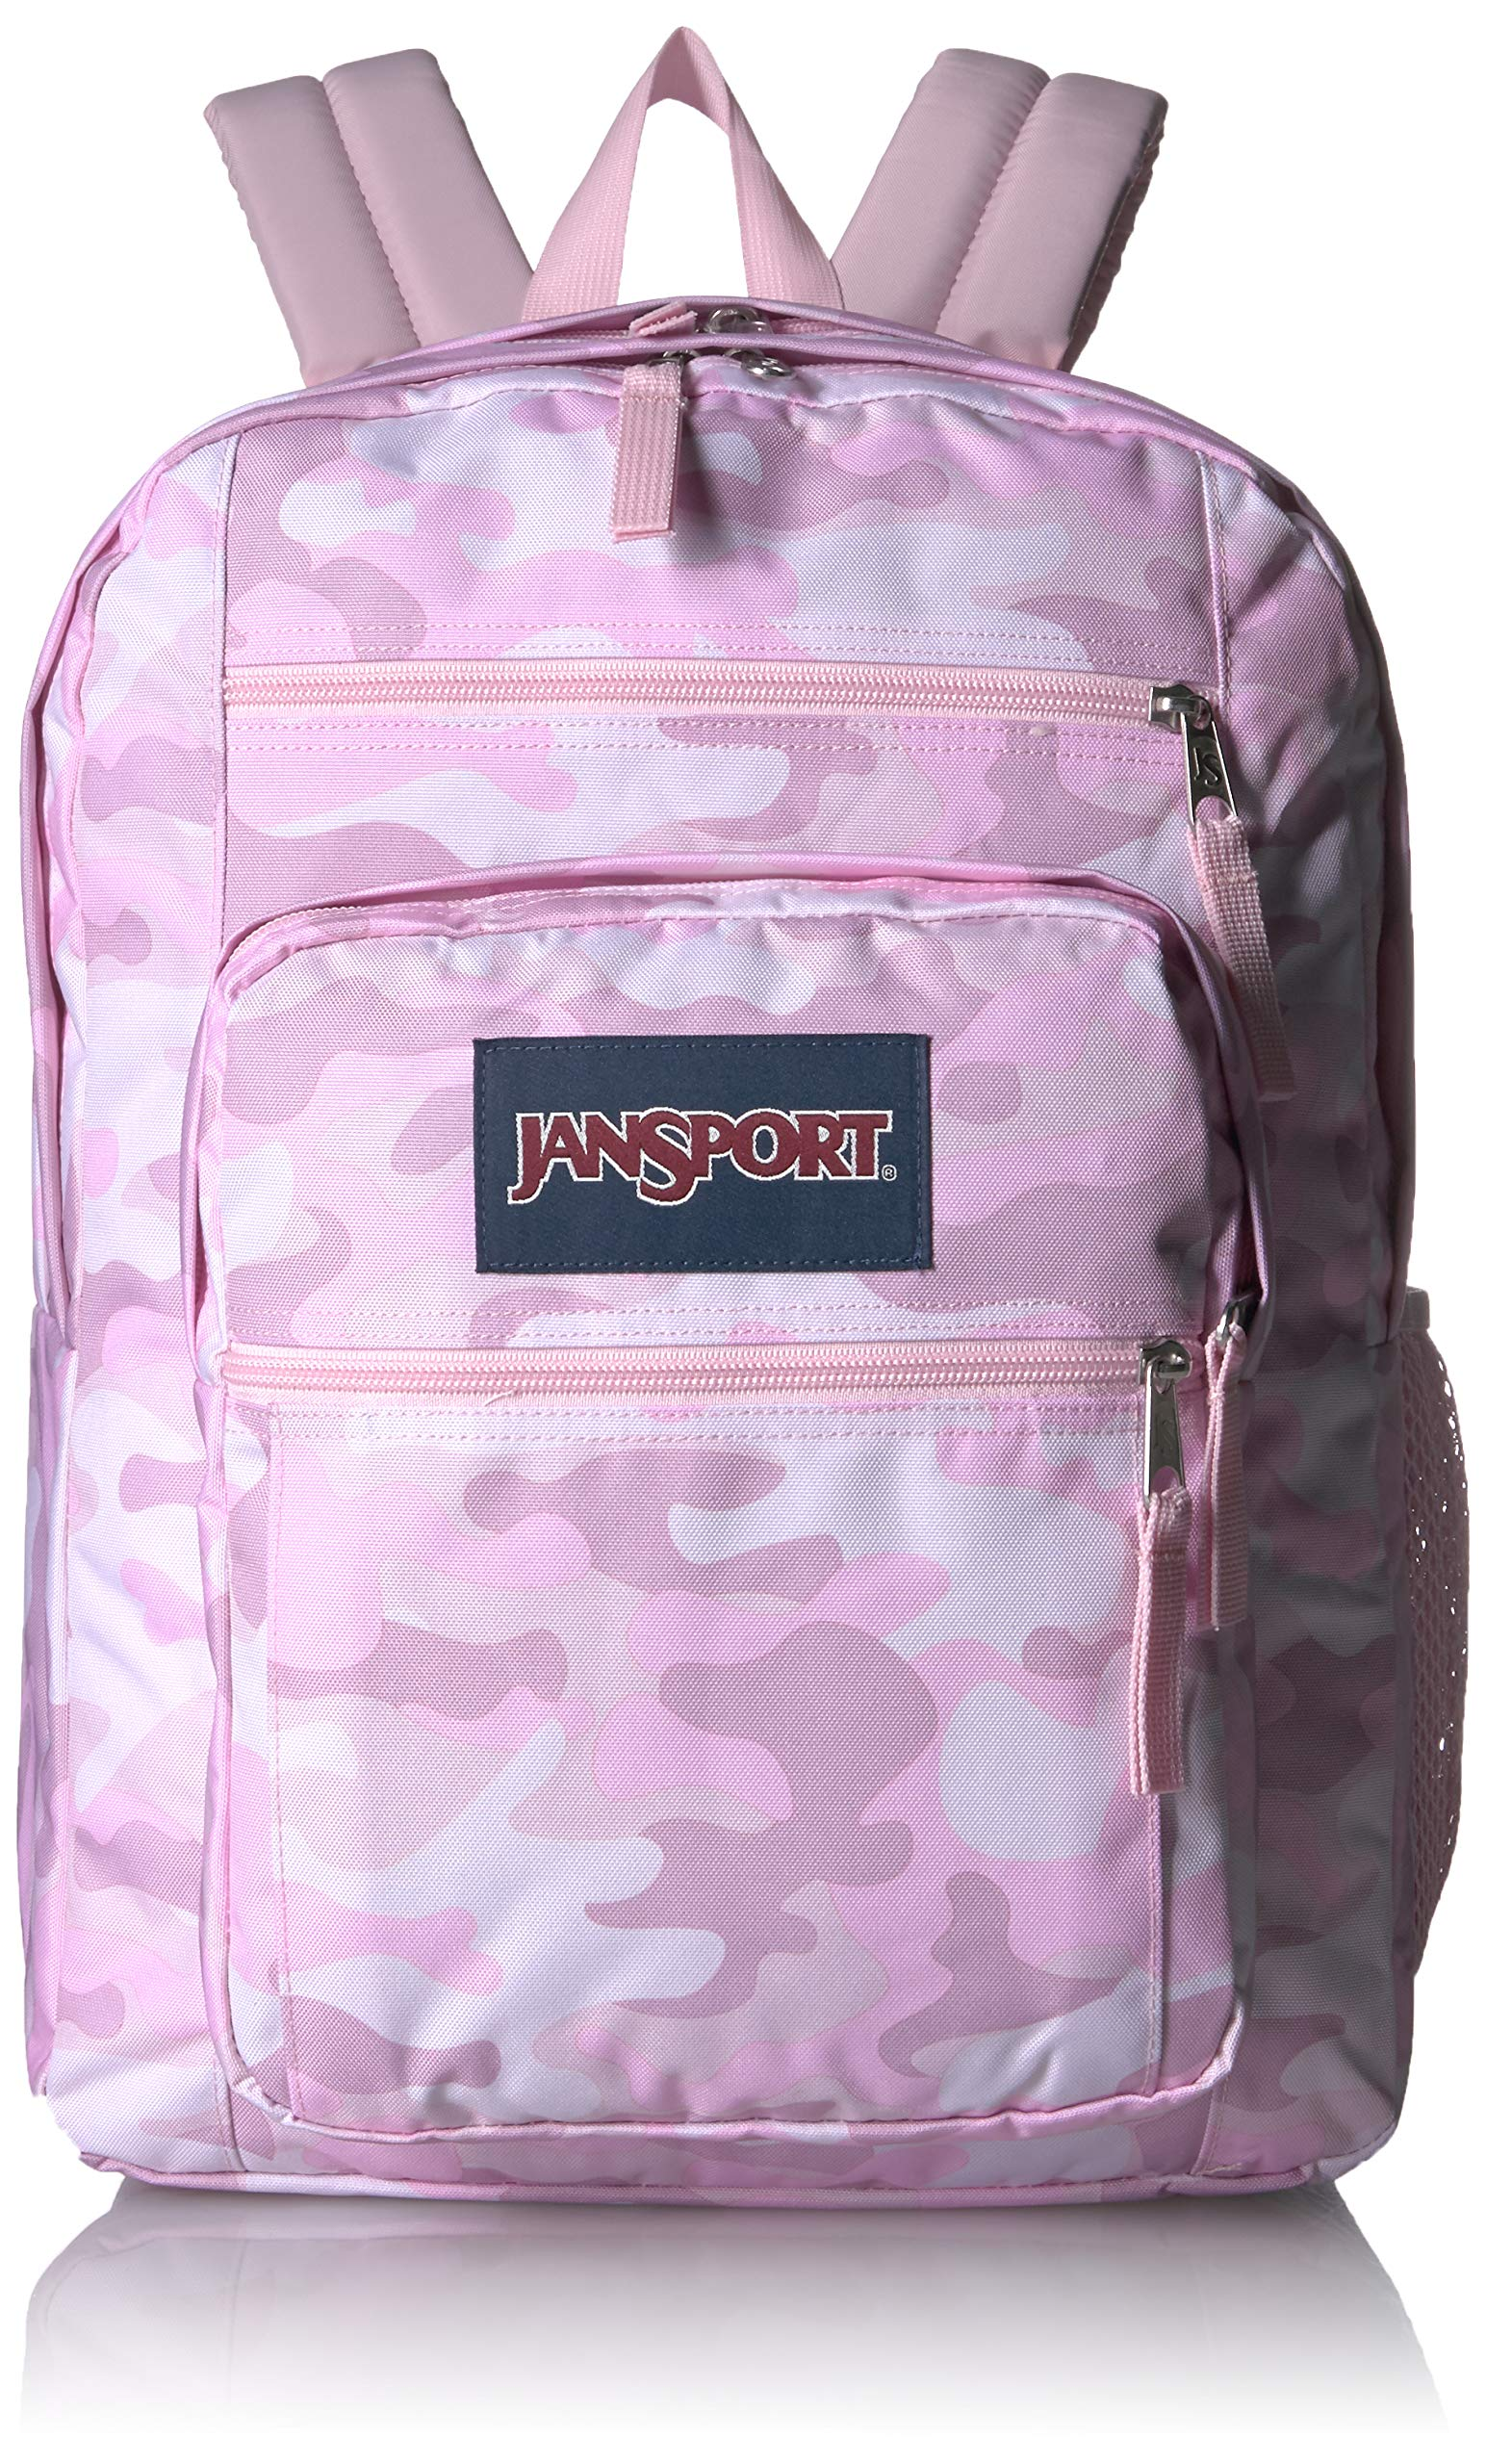 JanSport Big Student Backpack - 15-inch Laptop School Pack, Cotton Candy Camo by JanSport